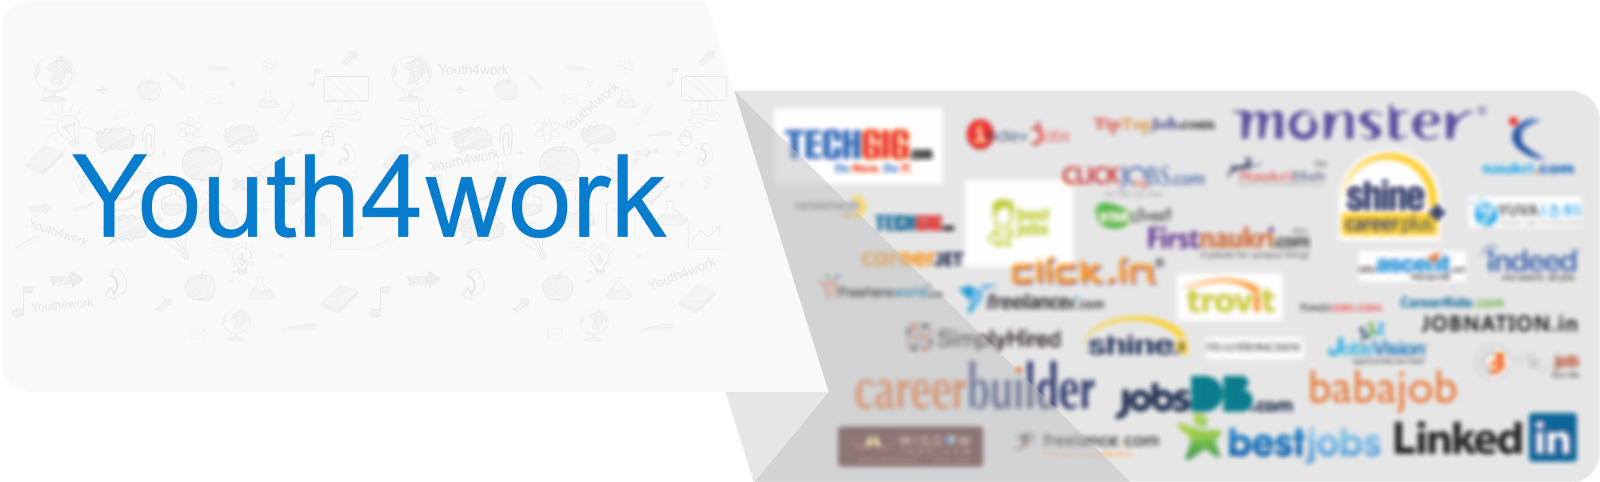 How Youth4work is different from other job search portals?